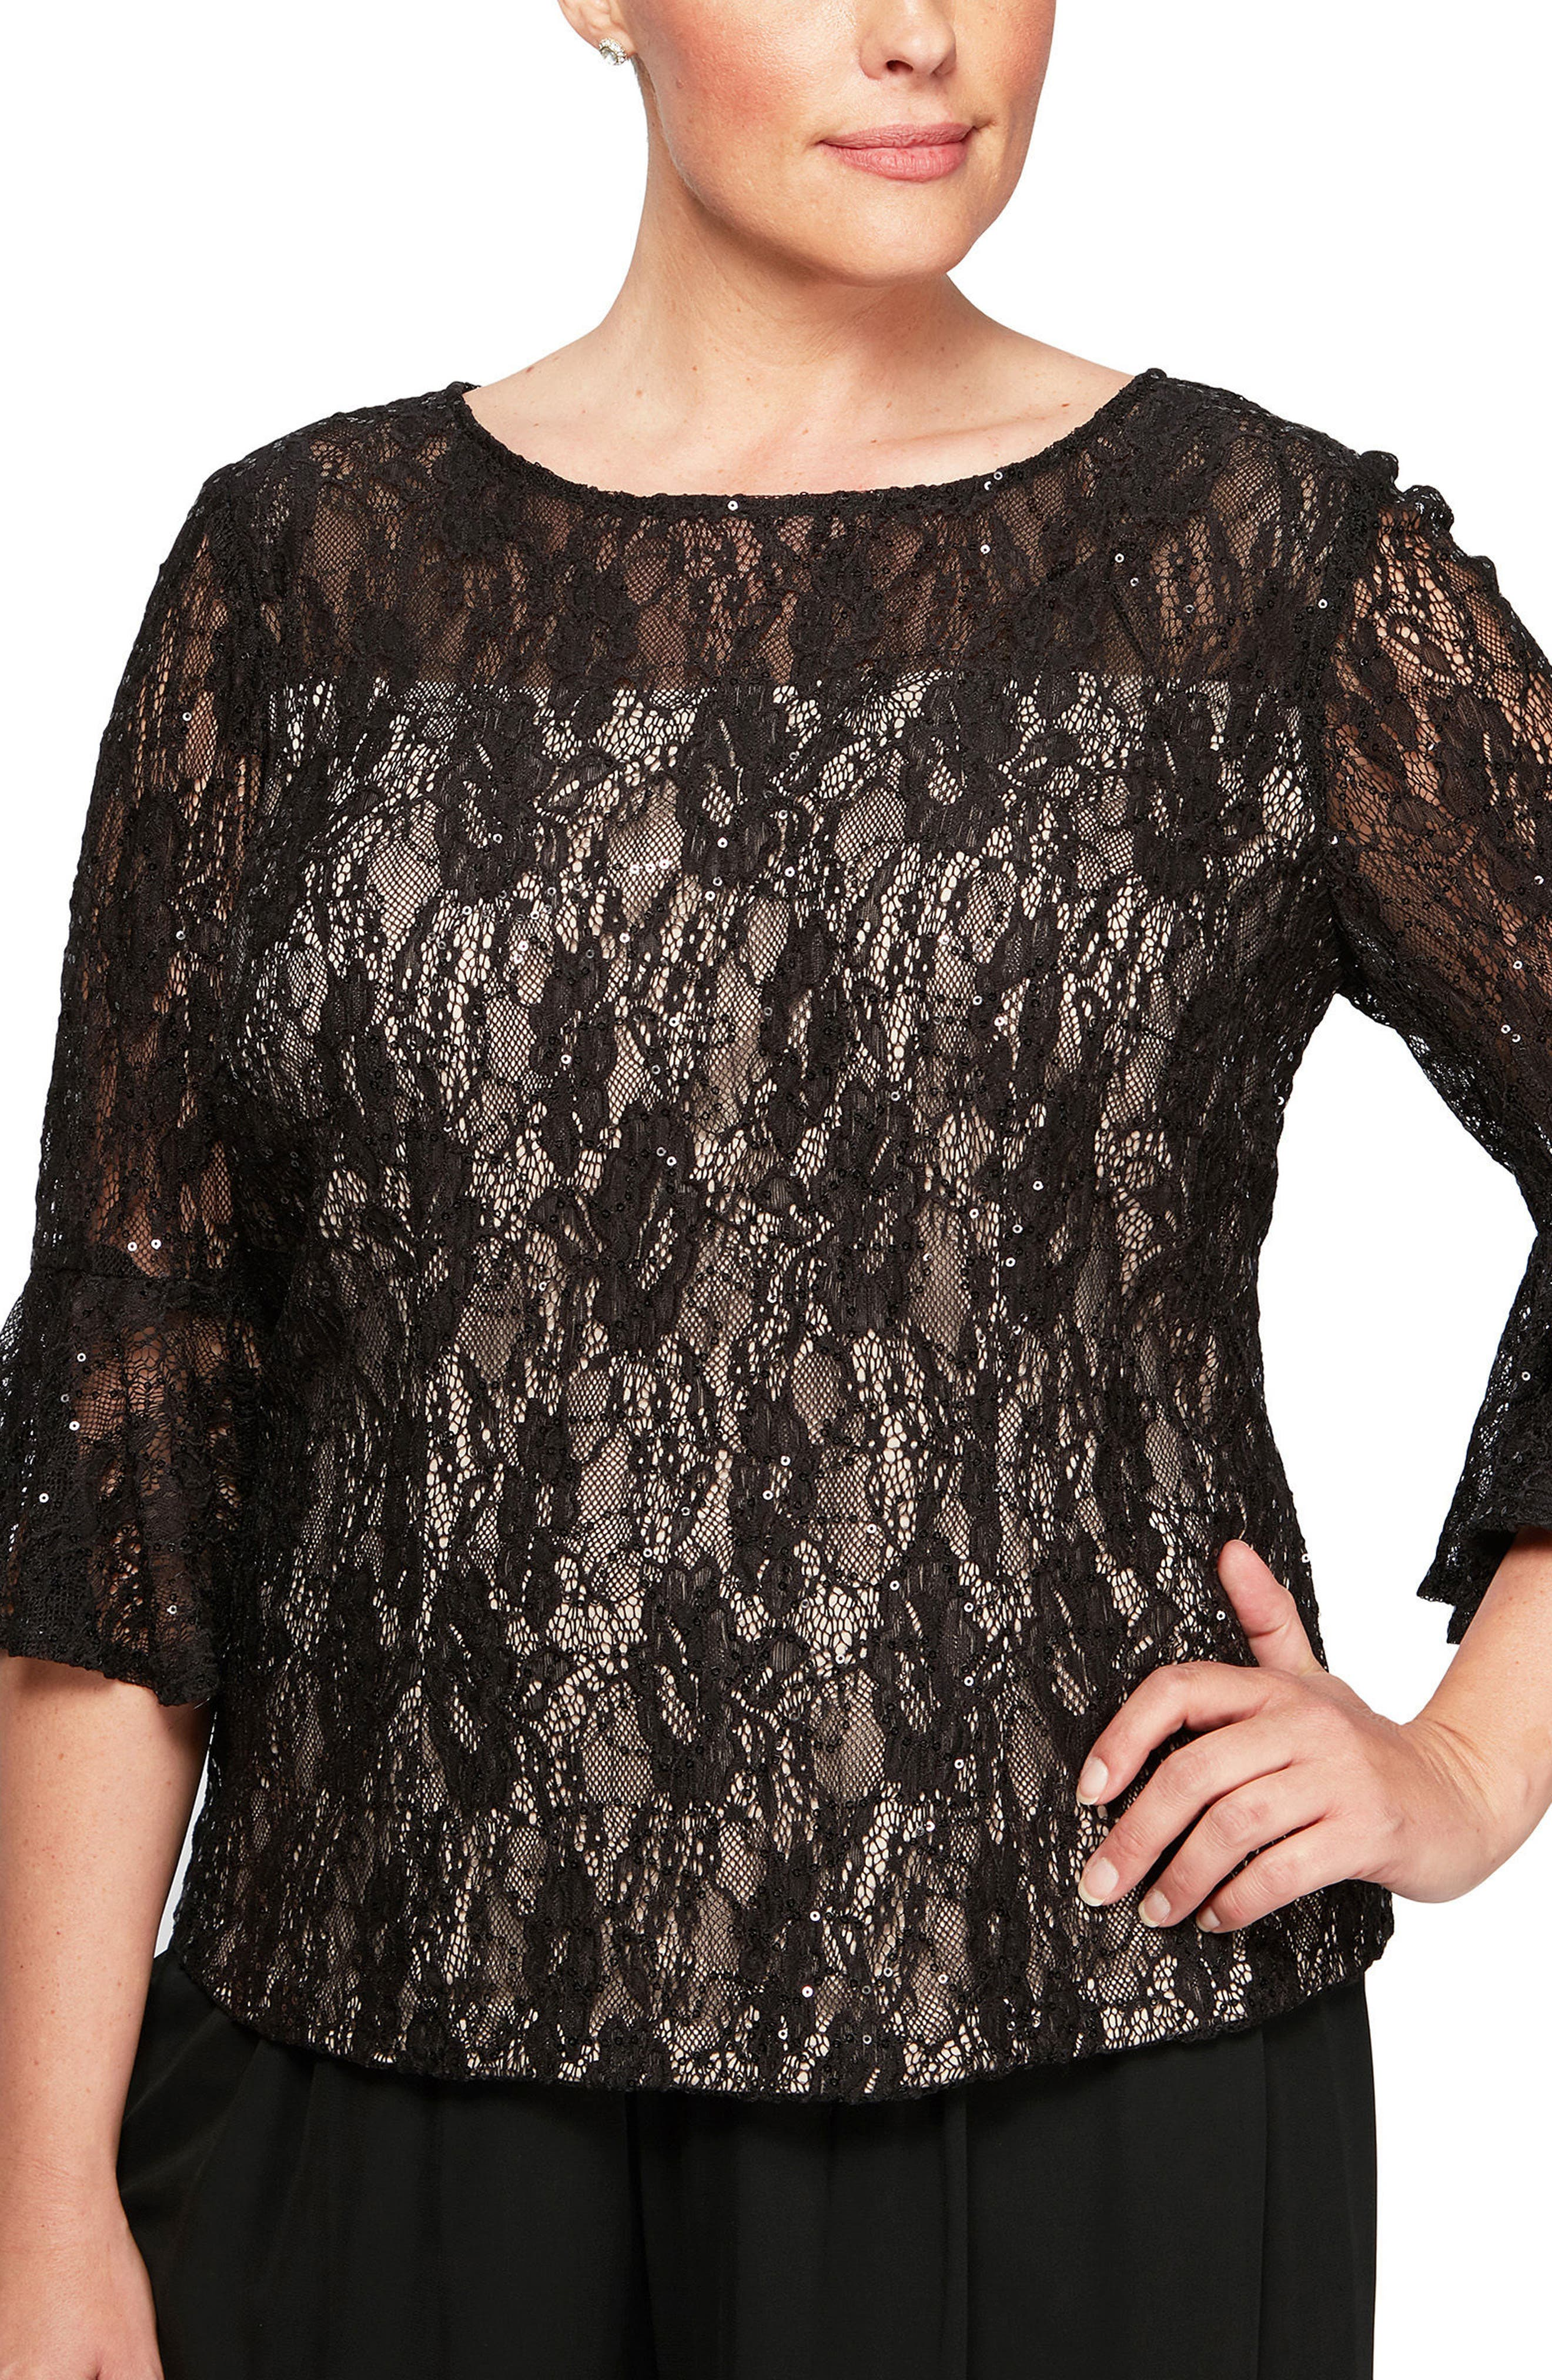 Bell Sleeve Sequin Lace Blouse,                             Main thumbnail 1, color,                             Black/ Nude